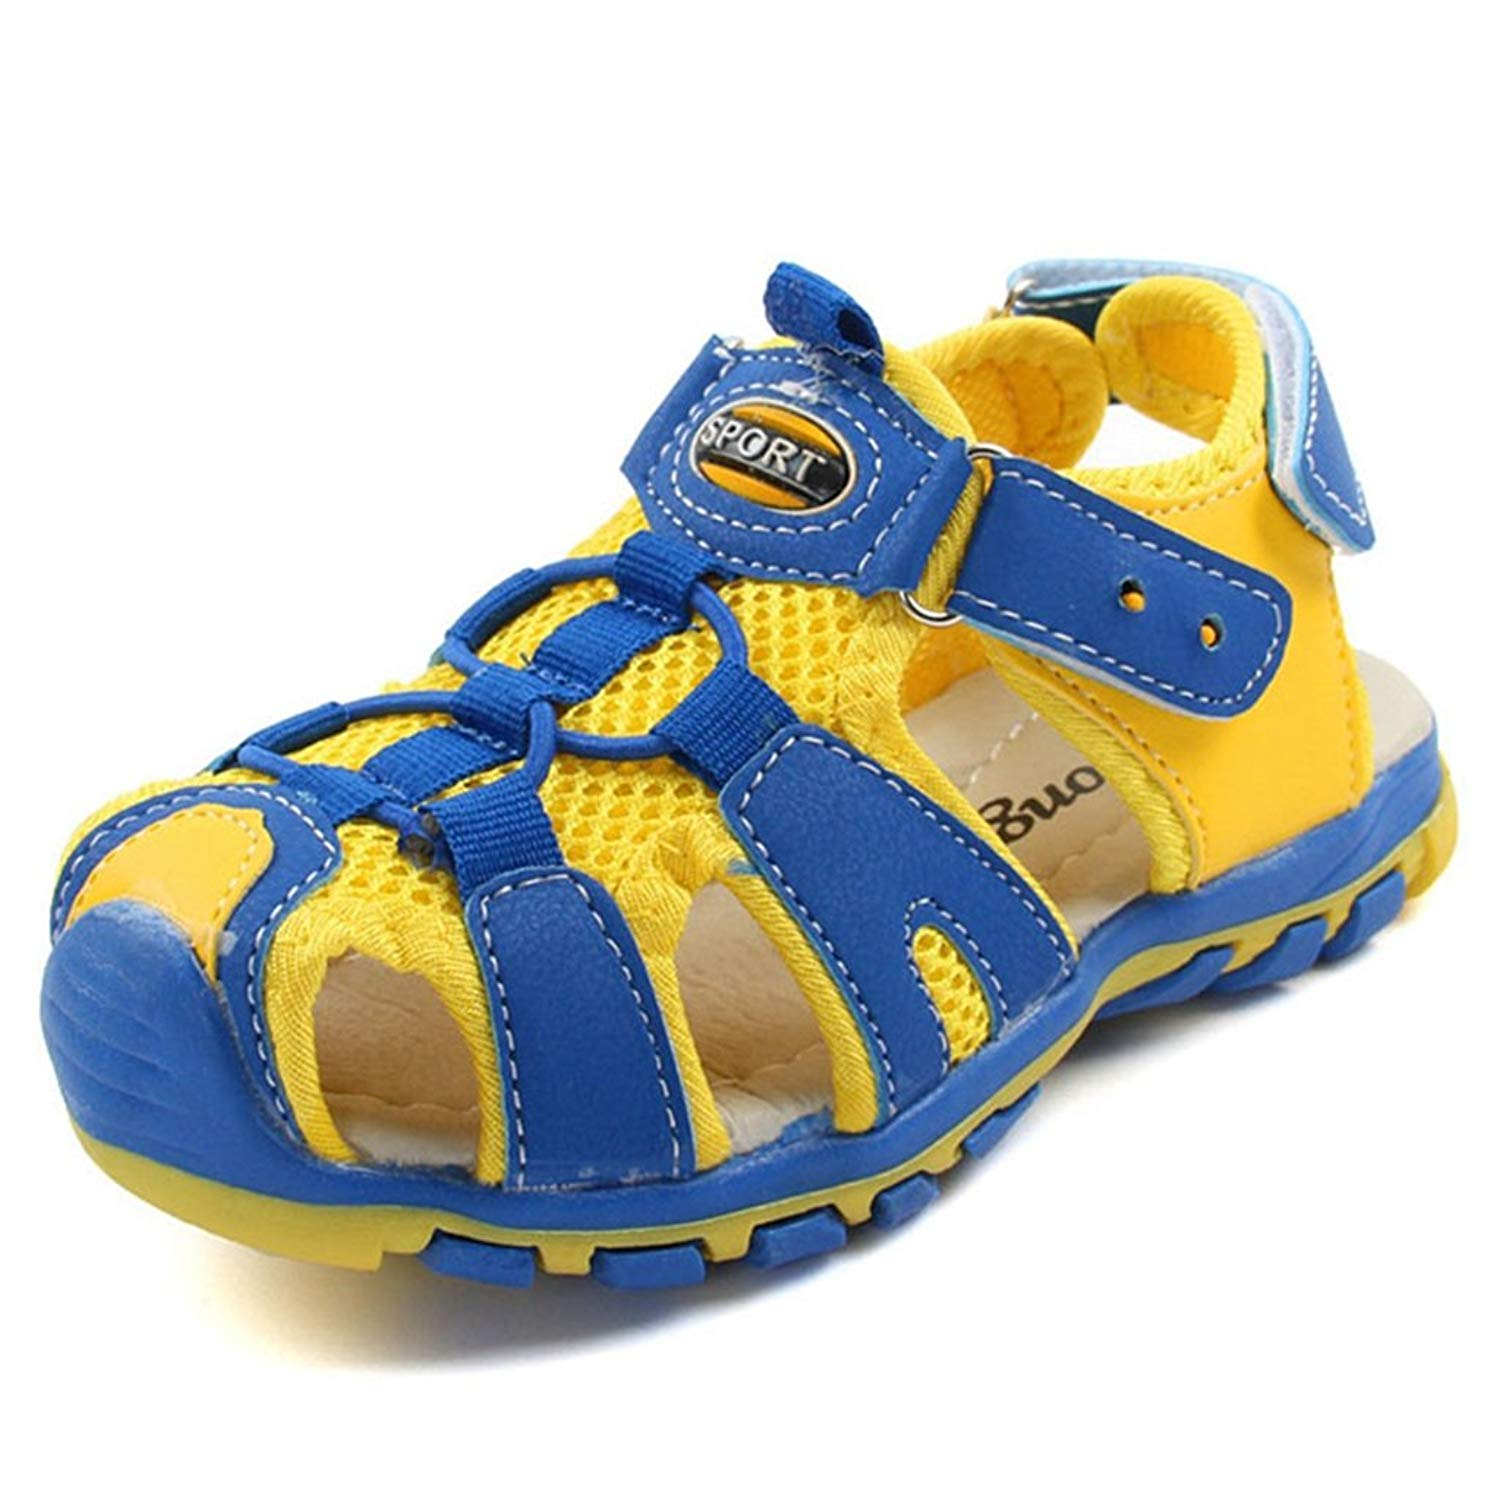 3e5dad62e3a78 Get Quotations · Boys Girls Outdoor Sport Closed-Toe Sandals Kids Athletic  Strap Breathable Mesh Water Sandals Shoes